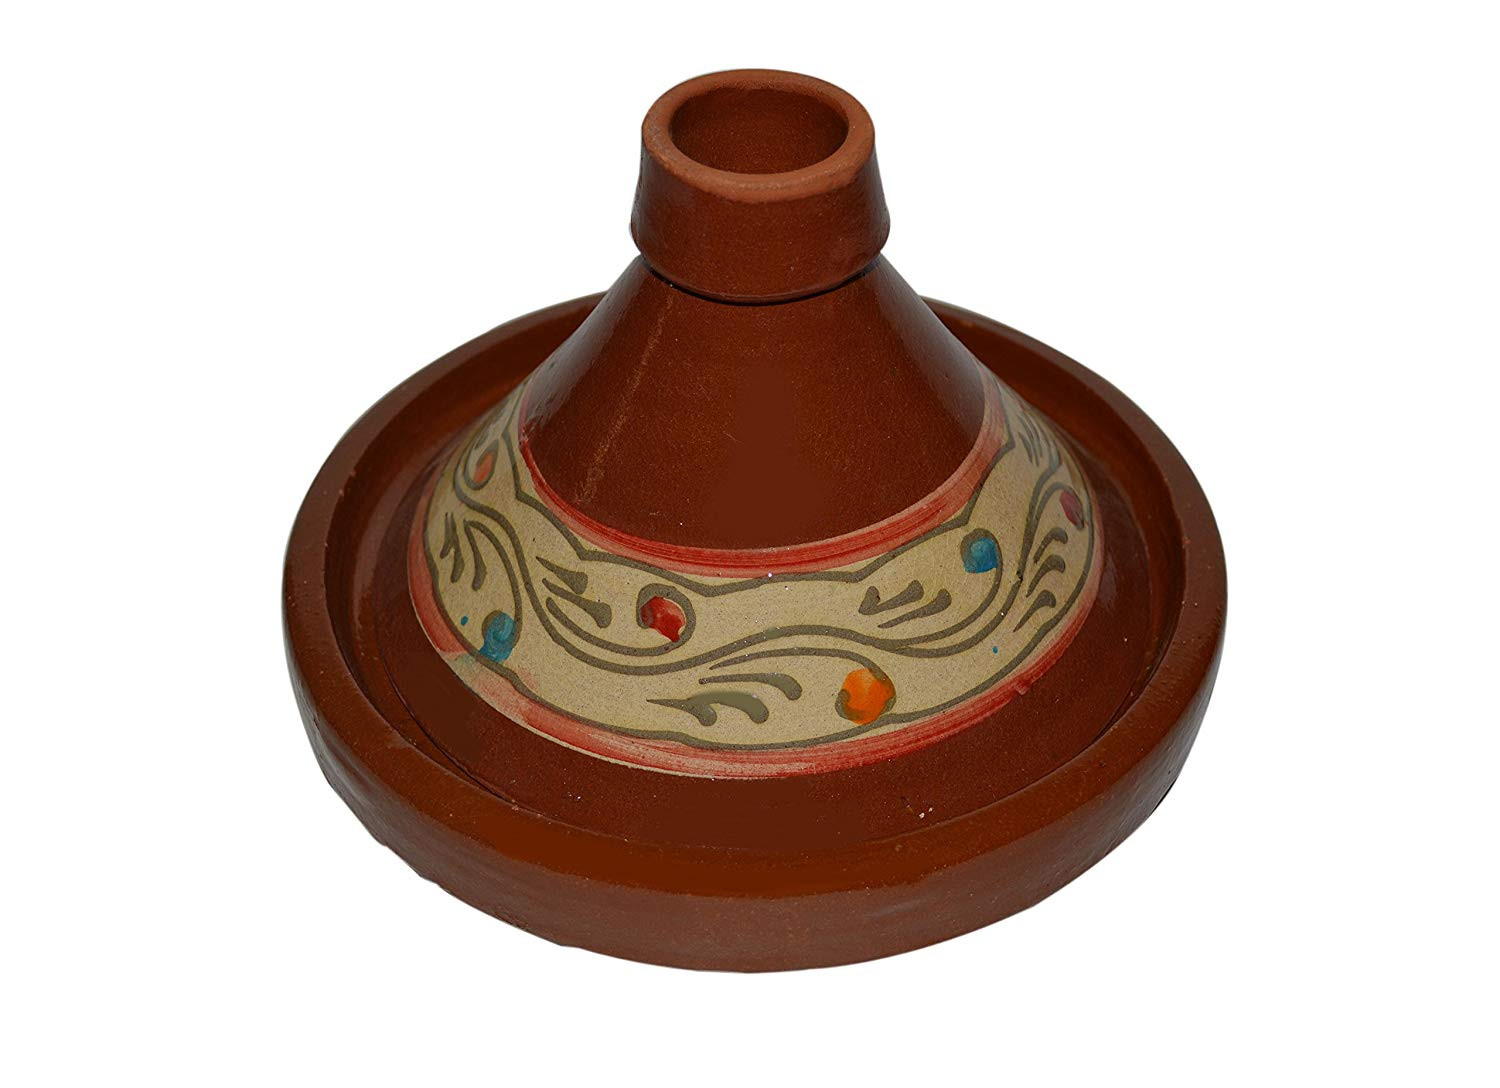 norleans vase made in italy of amazon com moroccan cooking tagine tajine small lead free cook pertaining to amazon com moroccan cooking tagine tajine small lead free cook ware kitchen dining